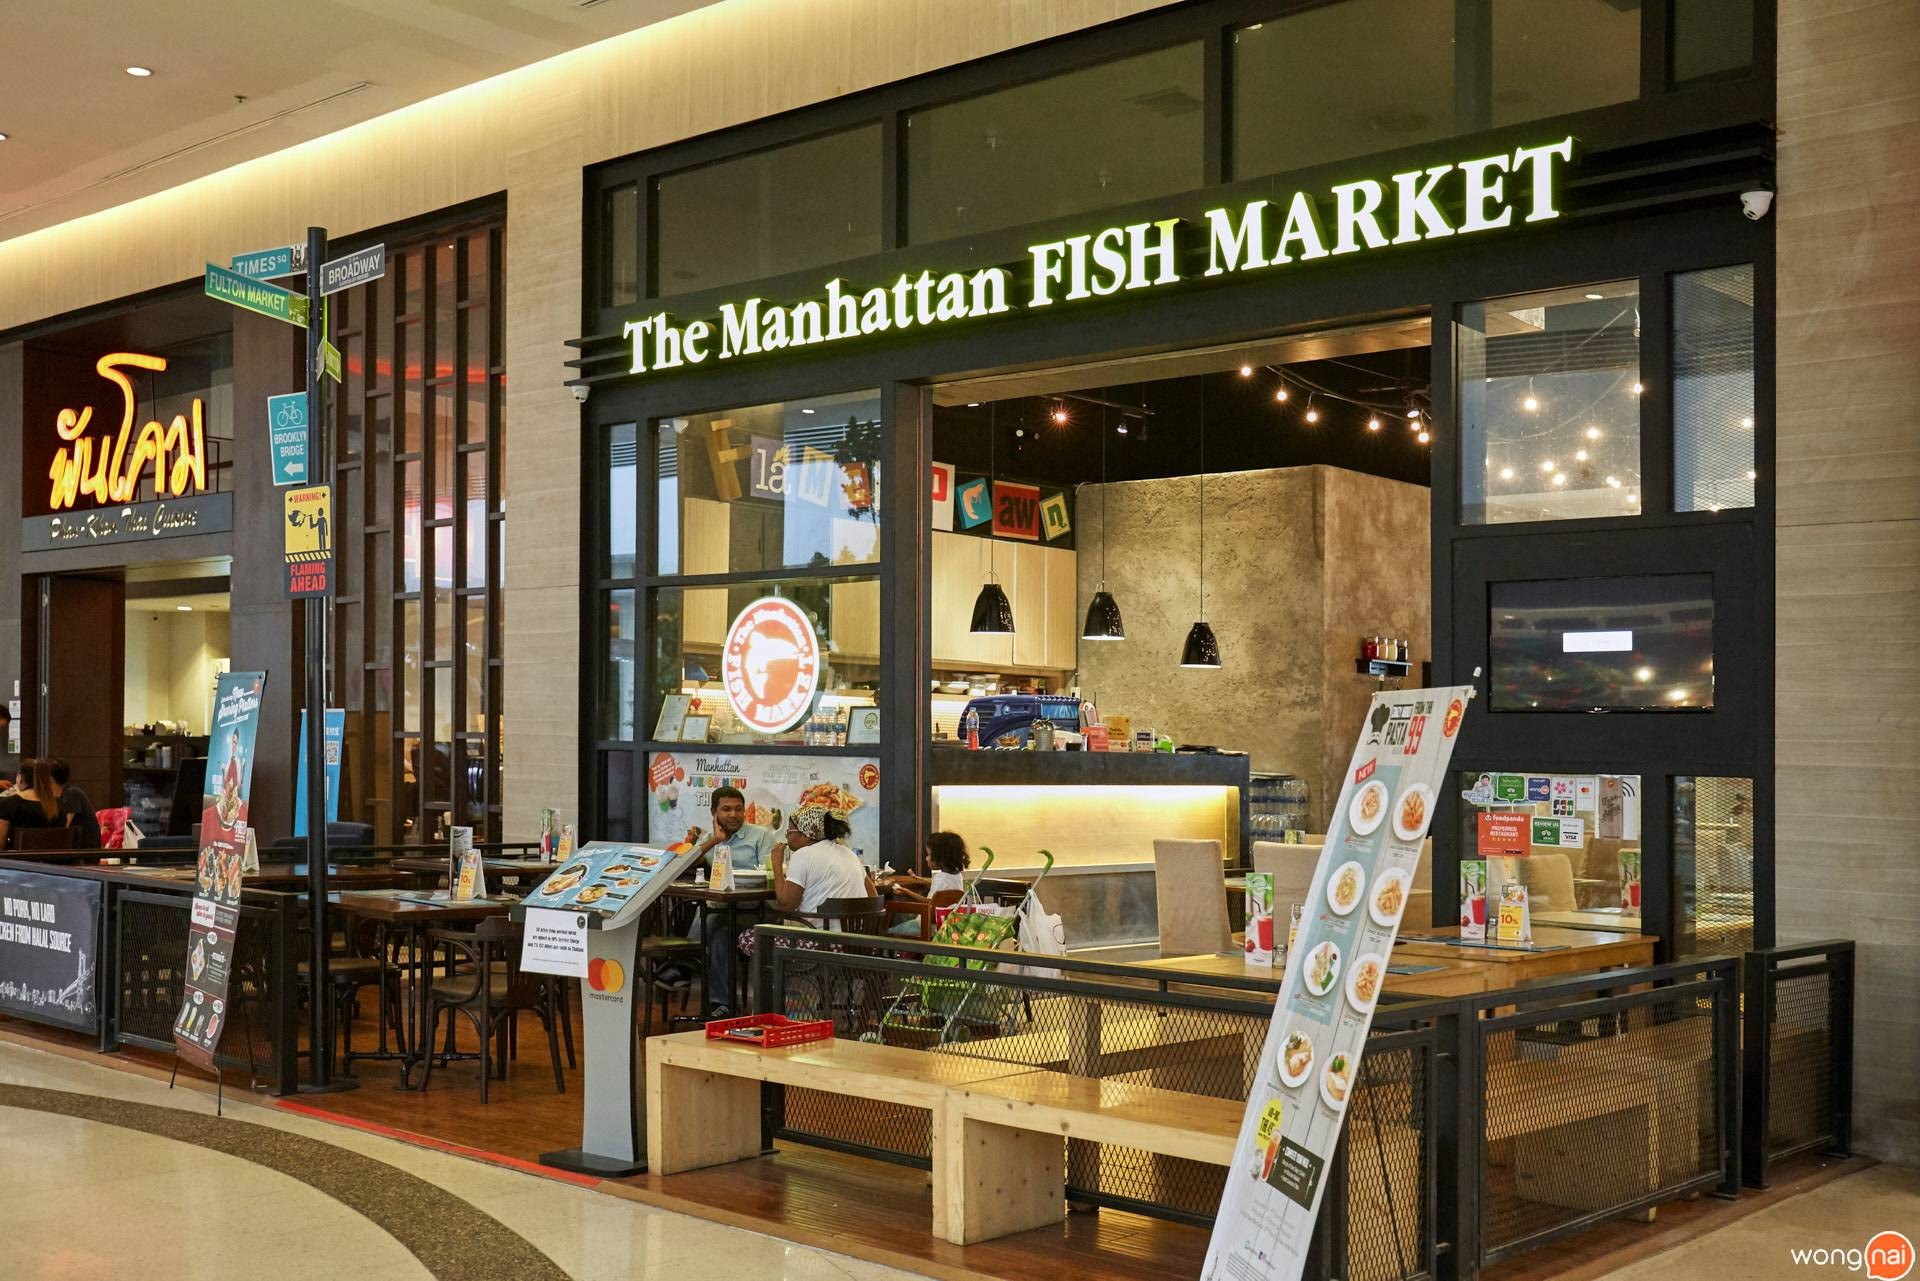 หน้าร้าน The Manhattan Fish Market